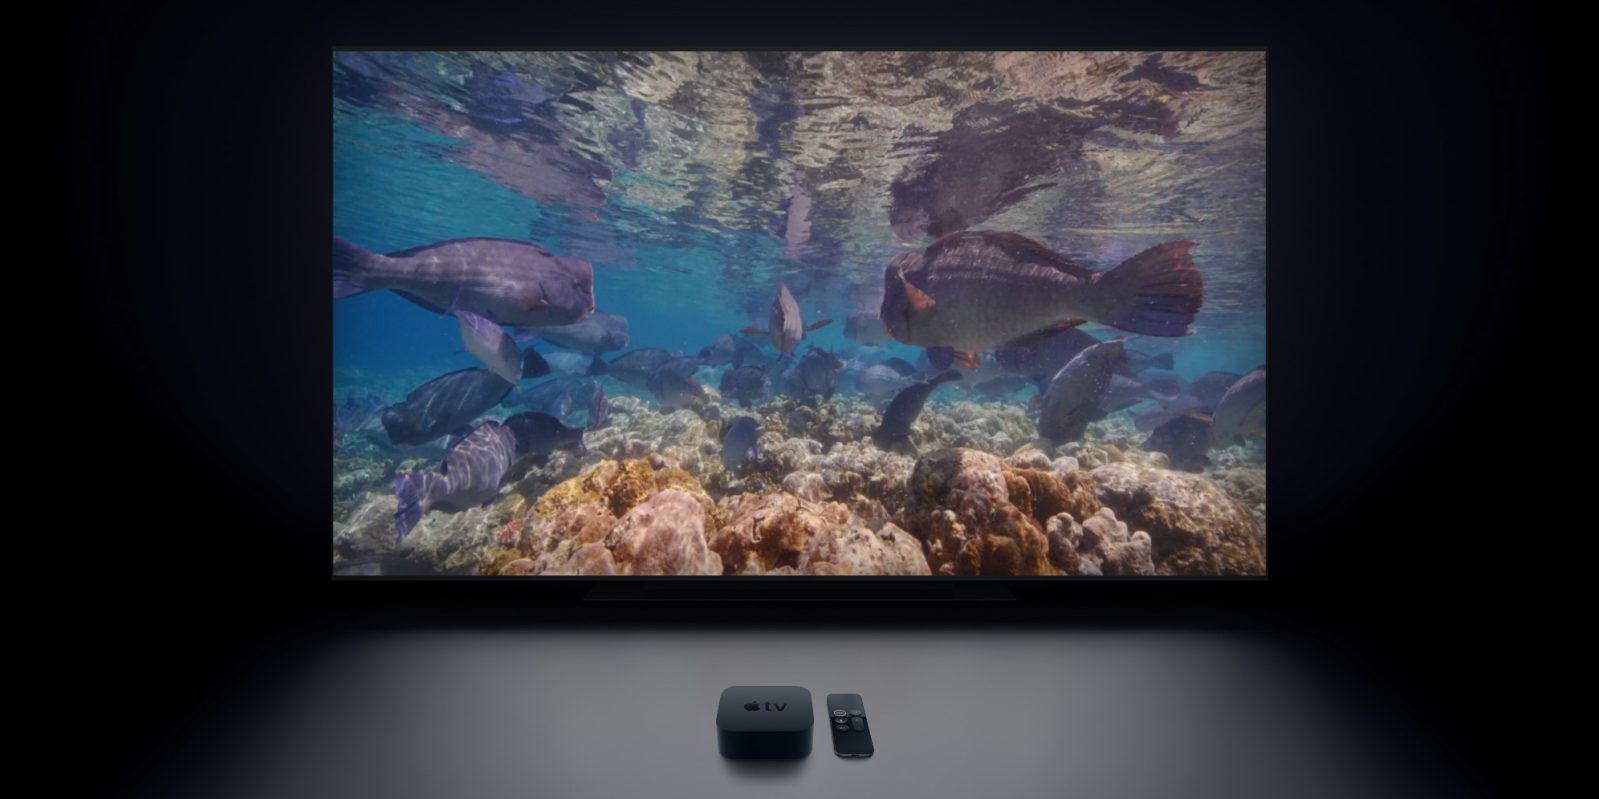 Apple Tv Now Features 10 Beautiful Underwater Video Screensavers 9to5mac